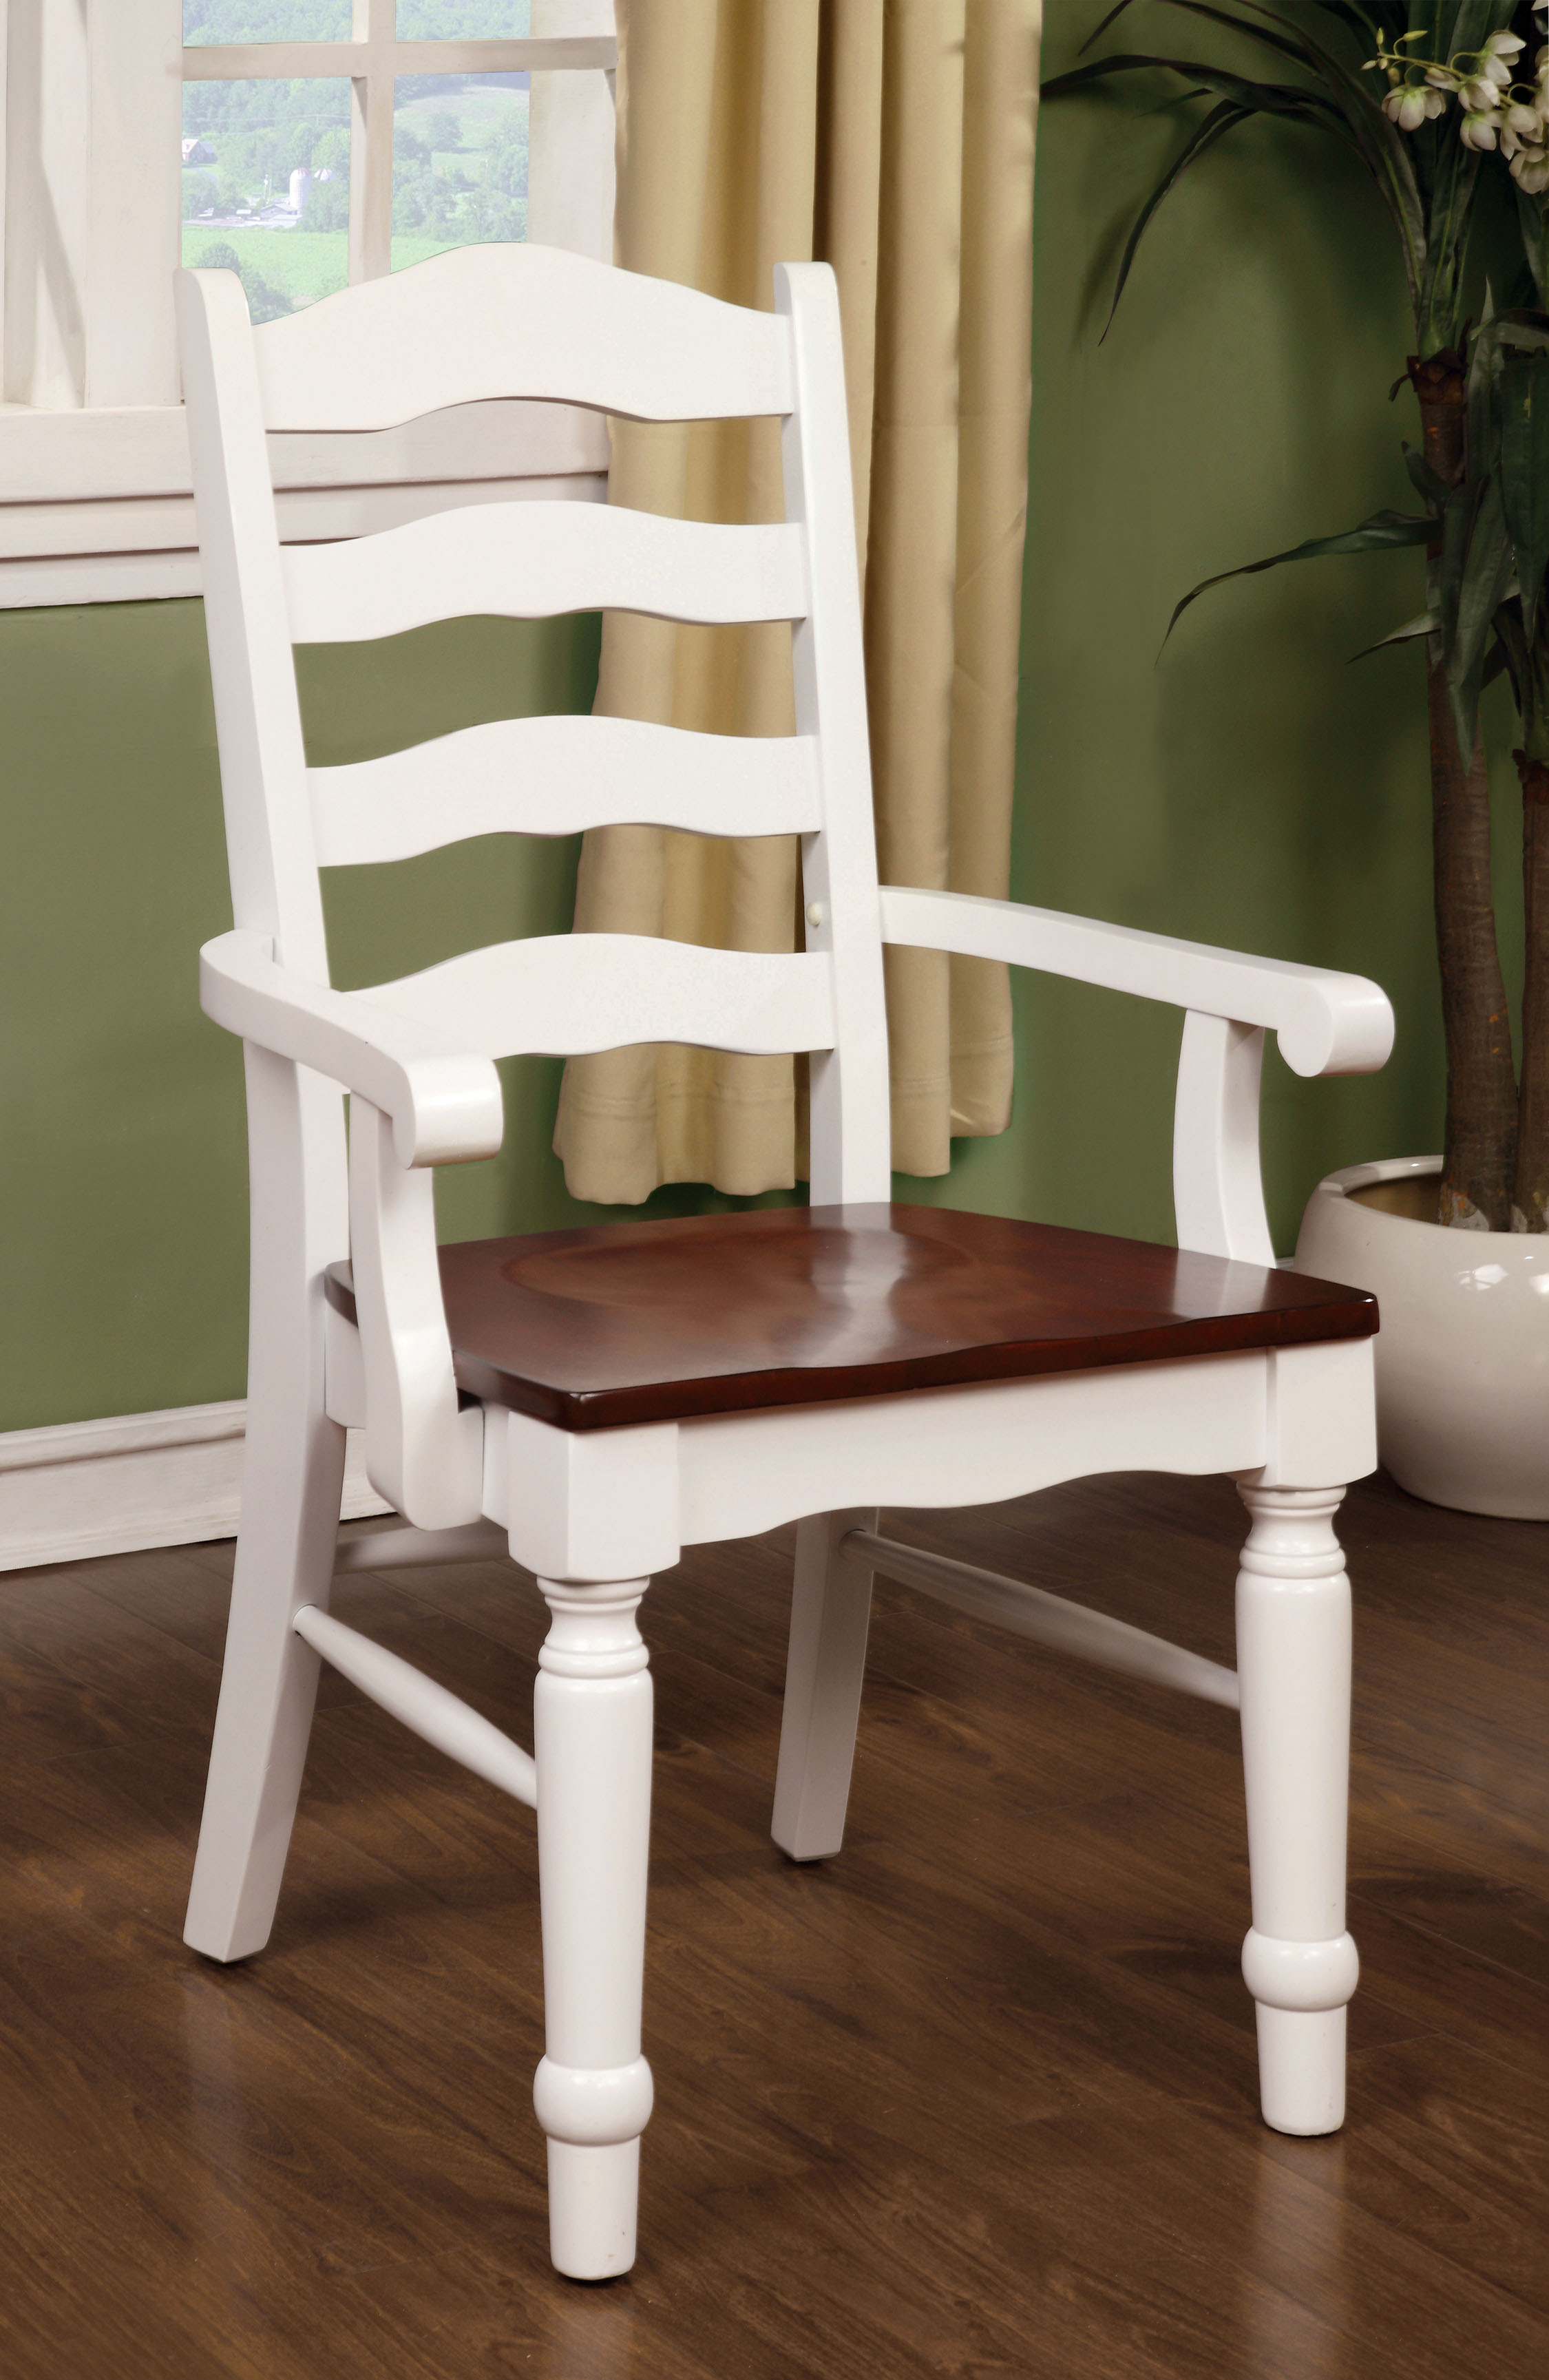 Furniture of America Lamberts Cottage Cherry and Cream White Arm Chair (Set of 2)